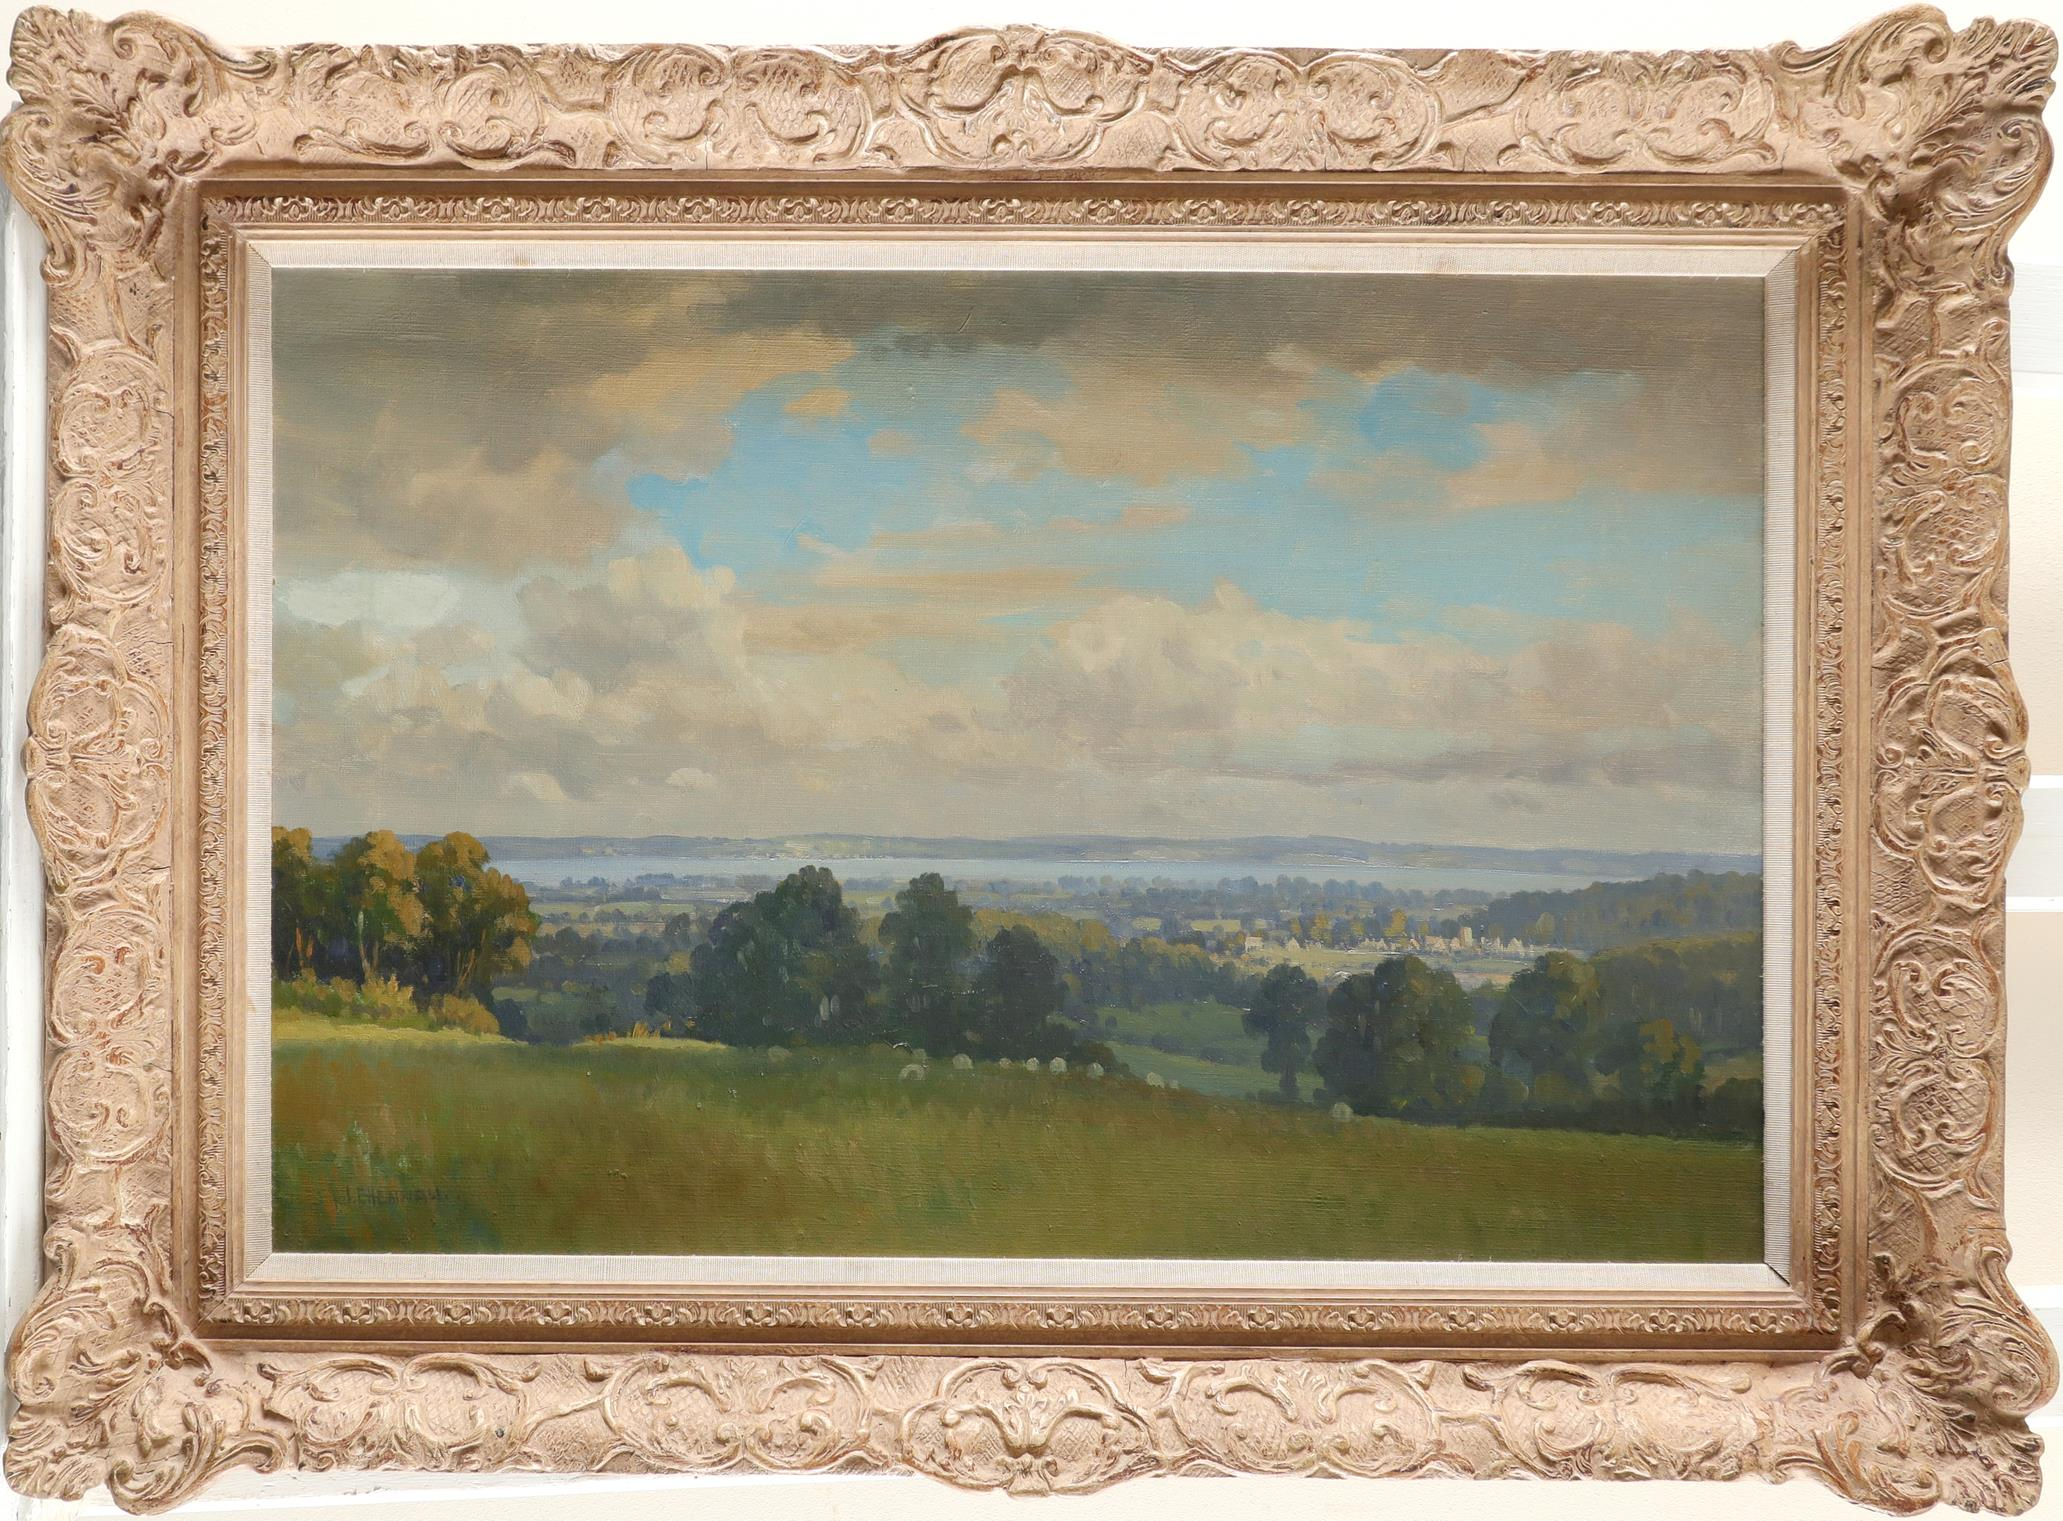 ‡Joseph Edward Hennah (Welsh 1897-1967) Landscape with the River Severn in the distance Signed J.E. - Image 2 of 3